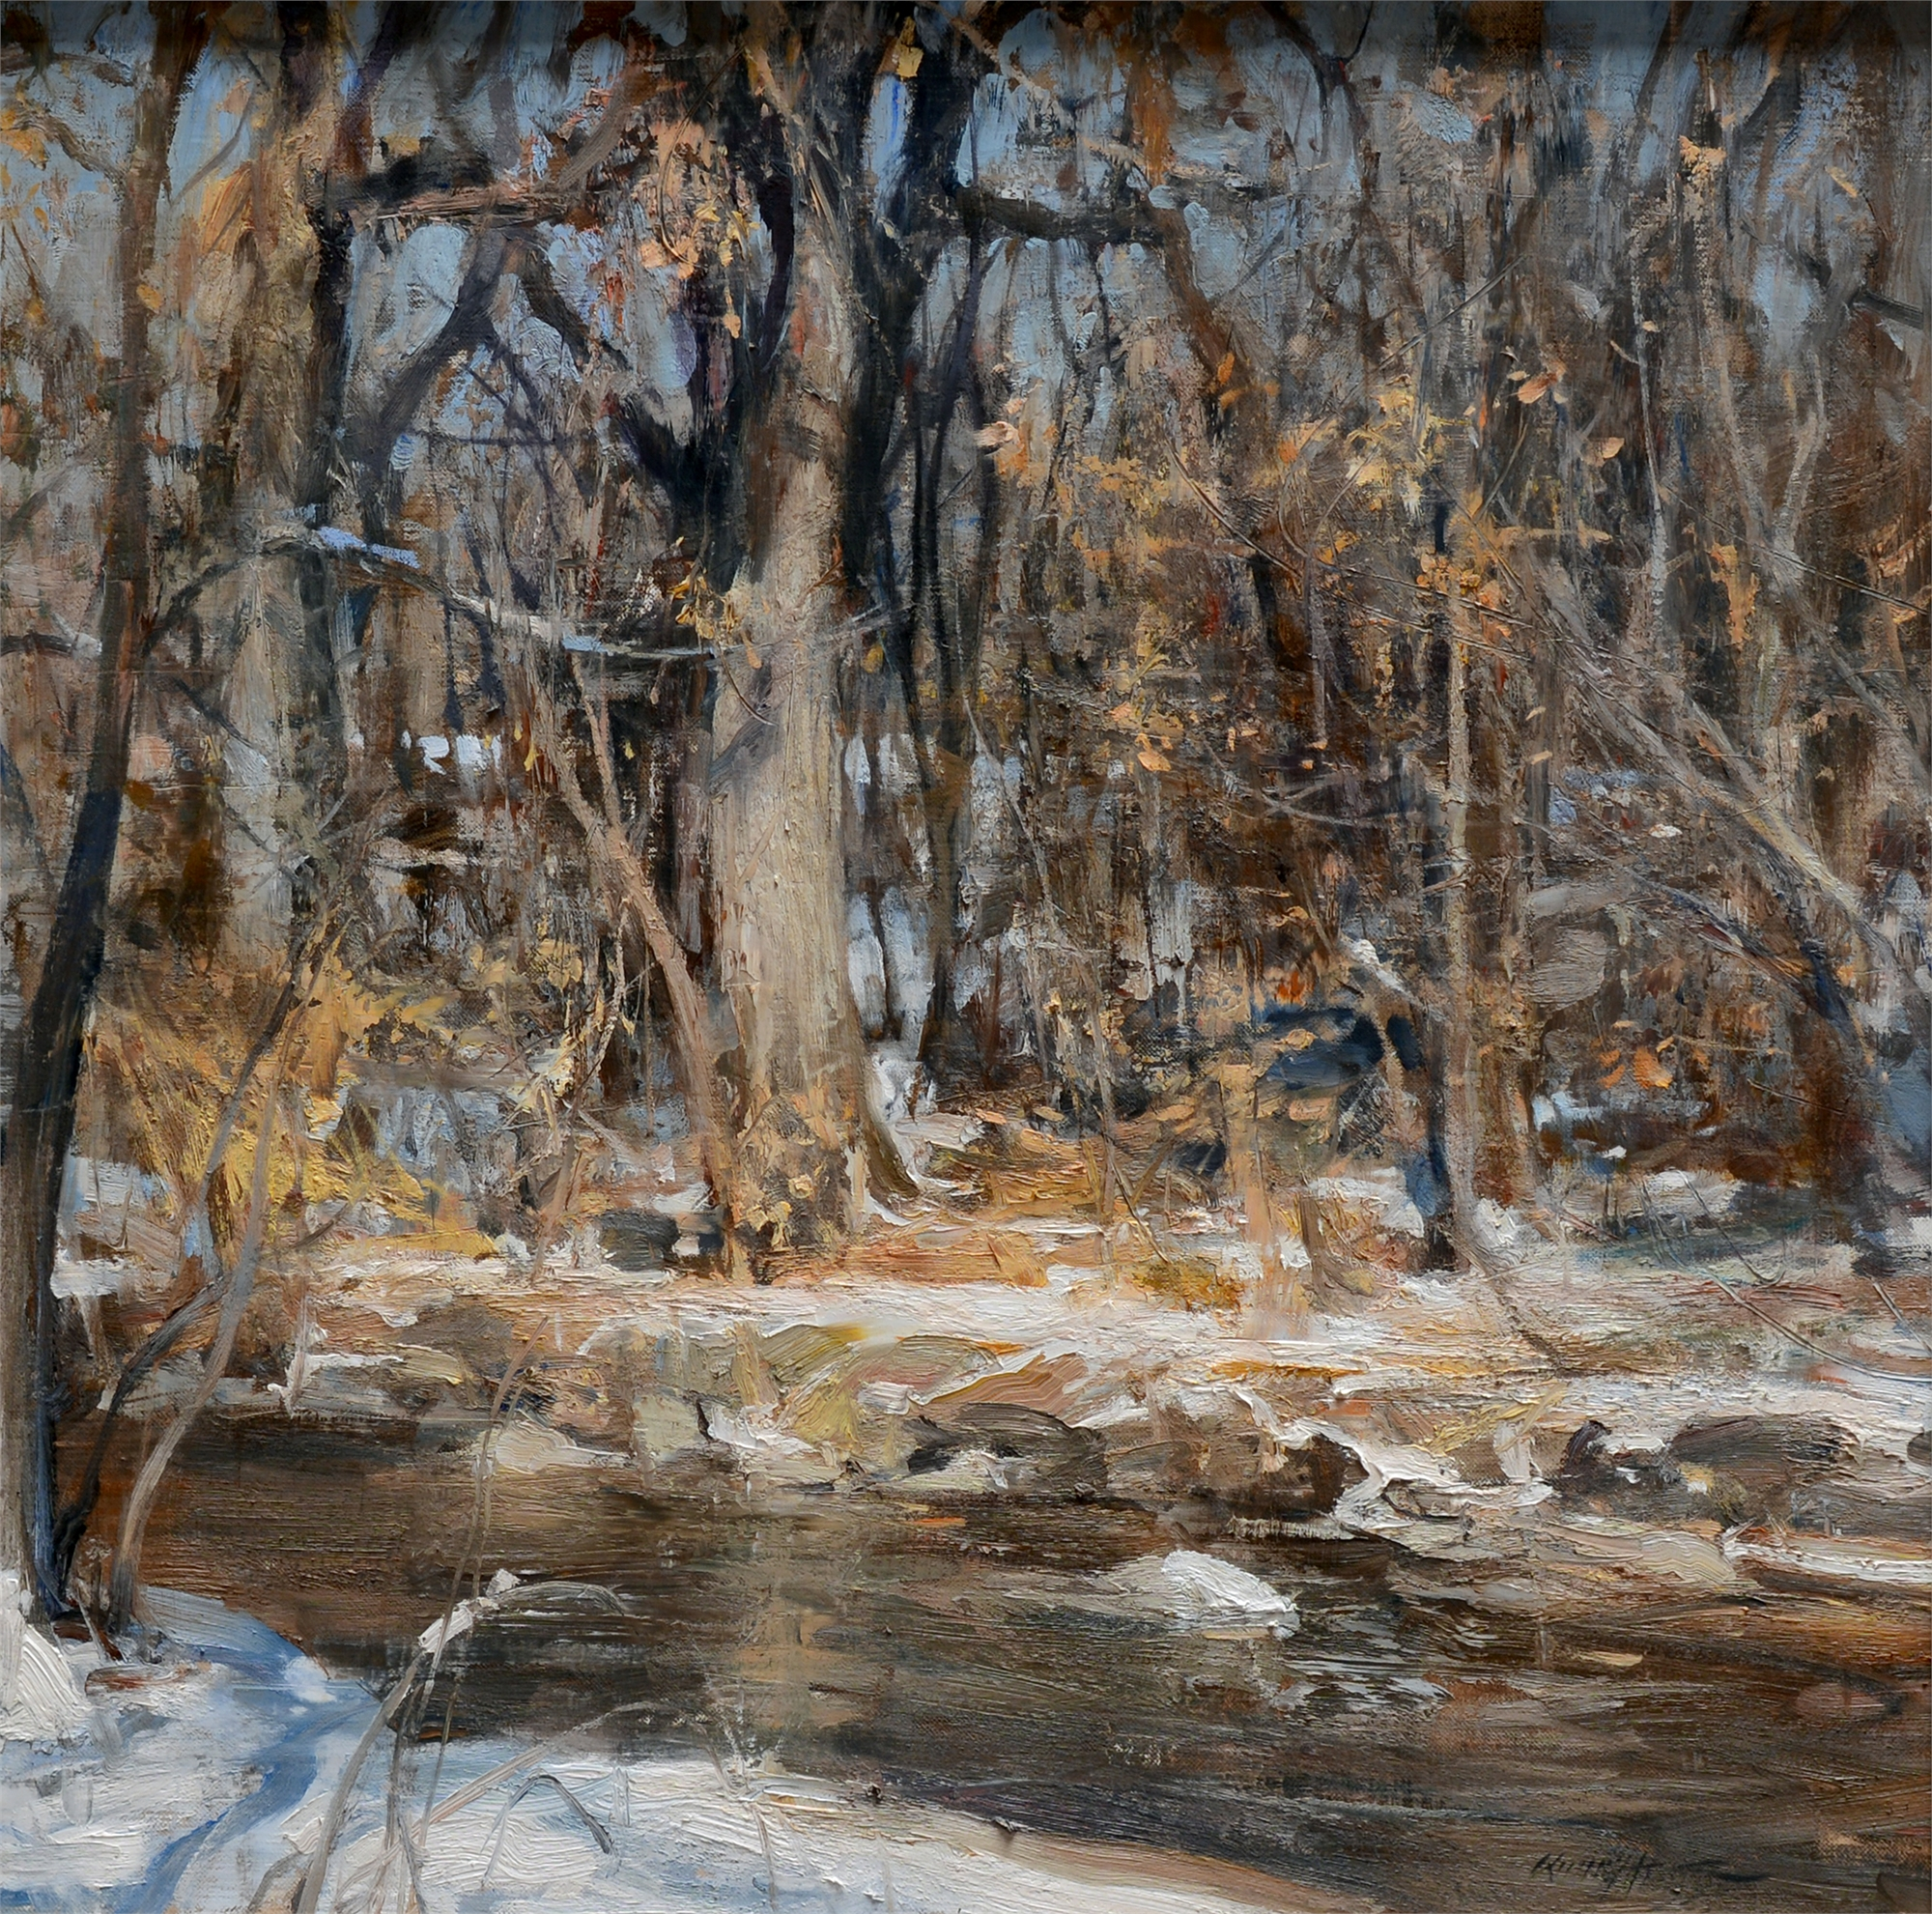 Bank of Cherry Creek by Quang Ho